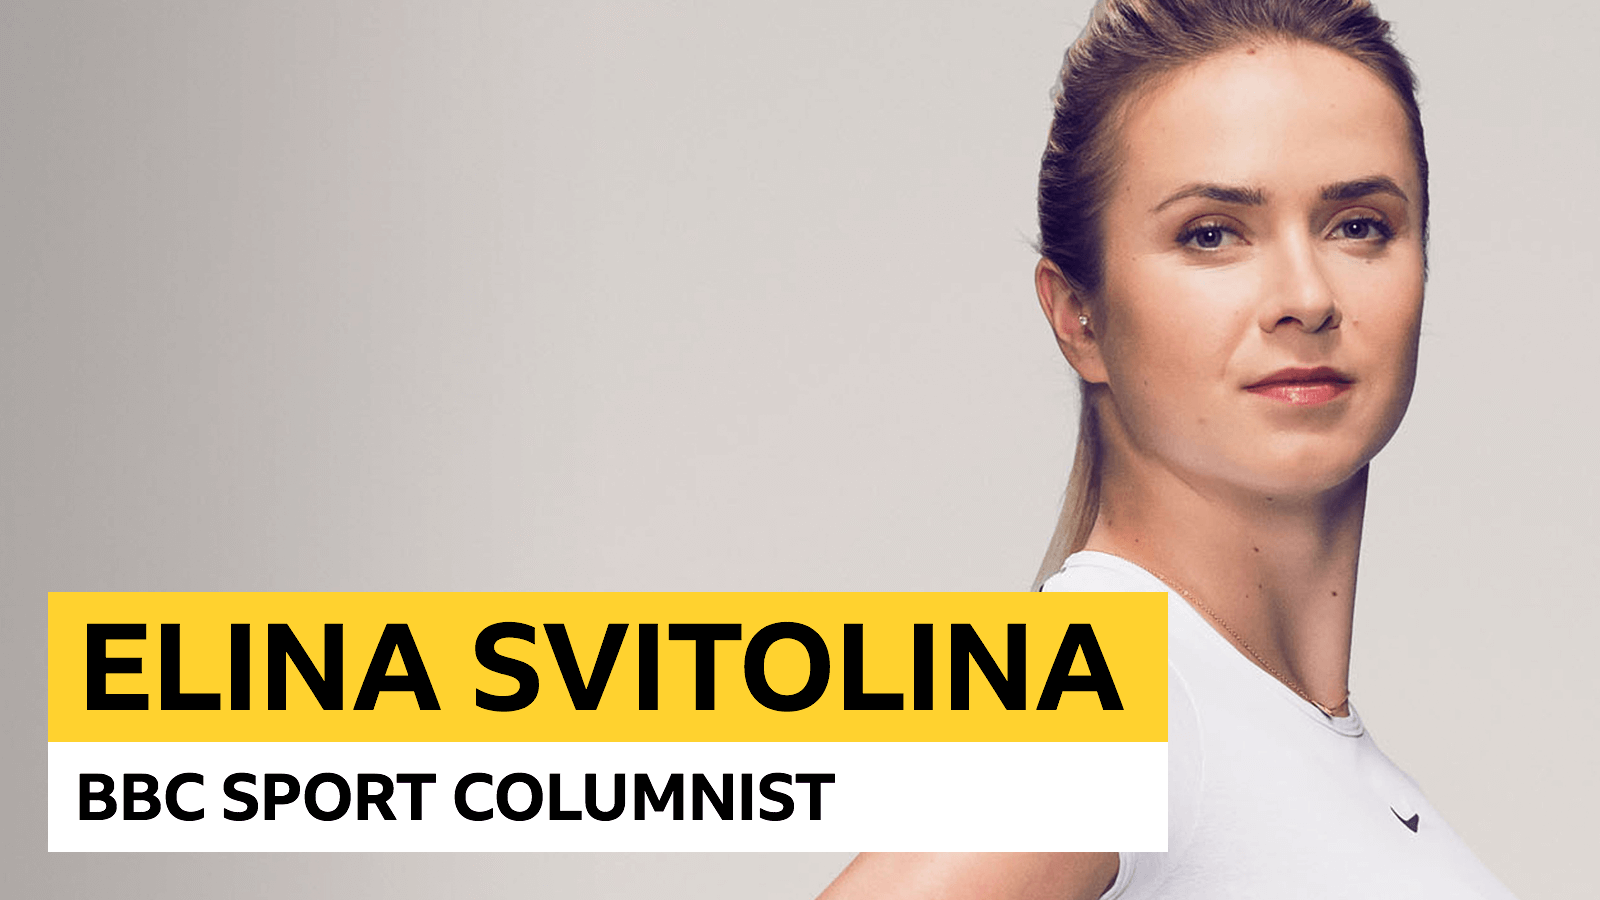 'Every match will be like a final' - Svitolina column